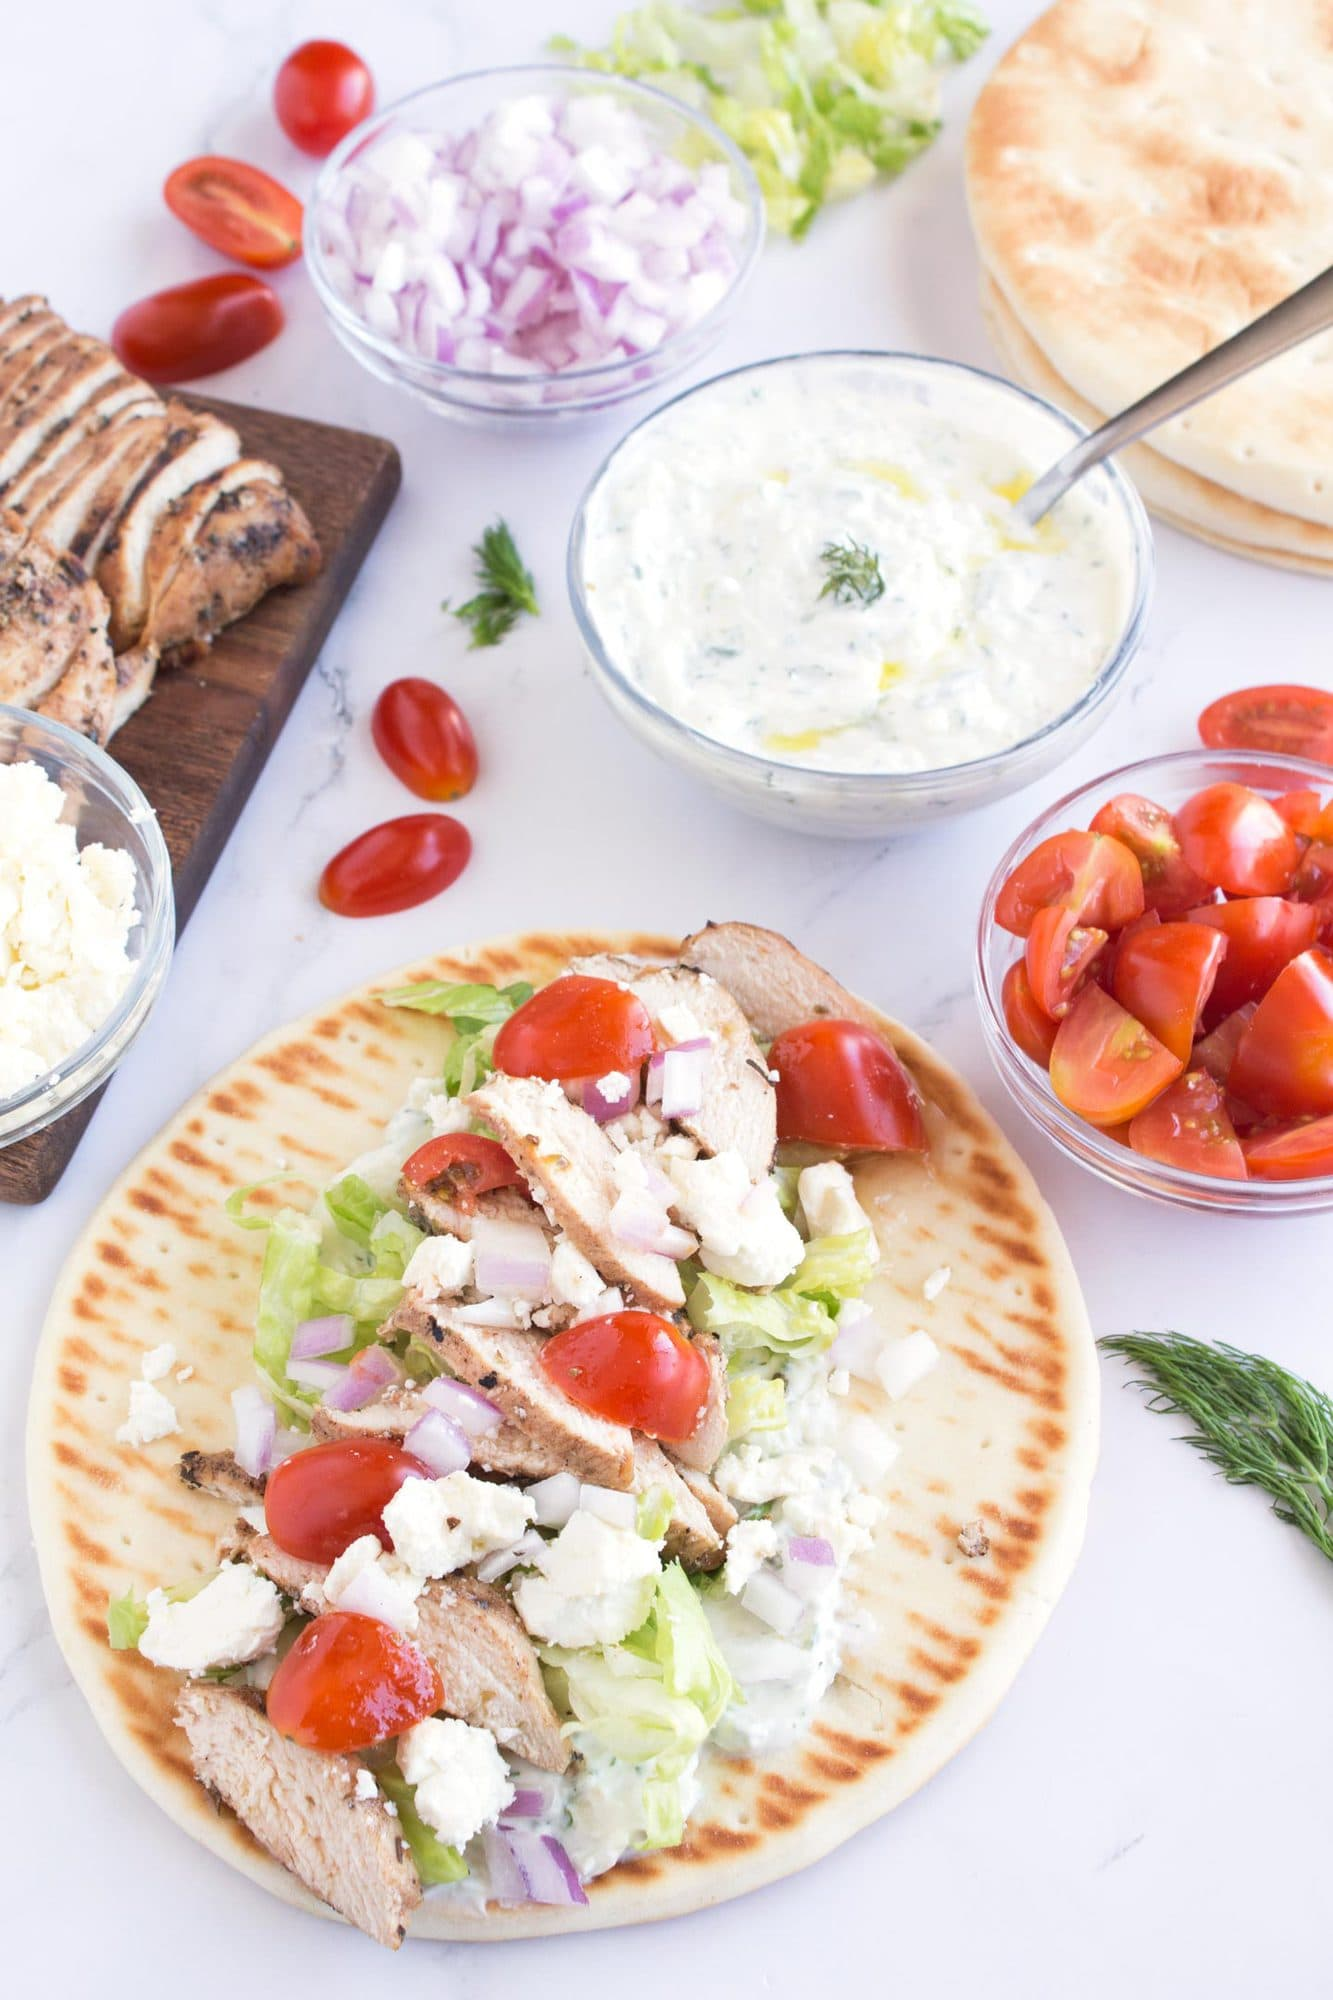 Pita layered with all the ingredients for a grilled chicken gyro.